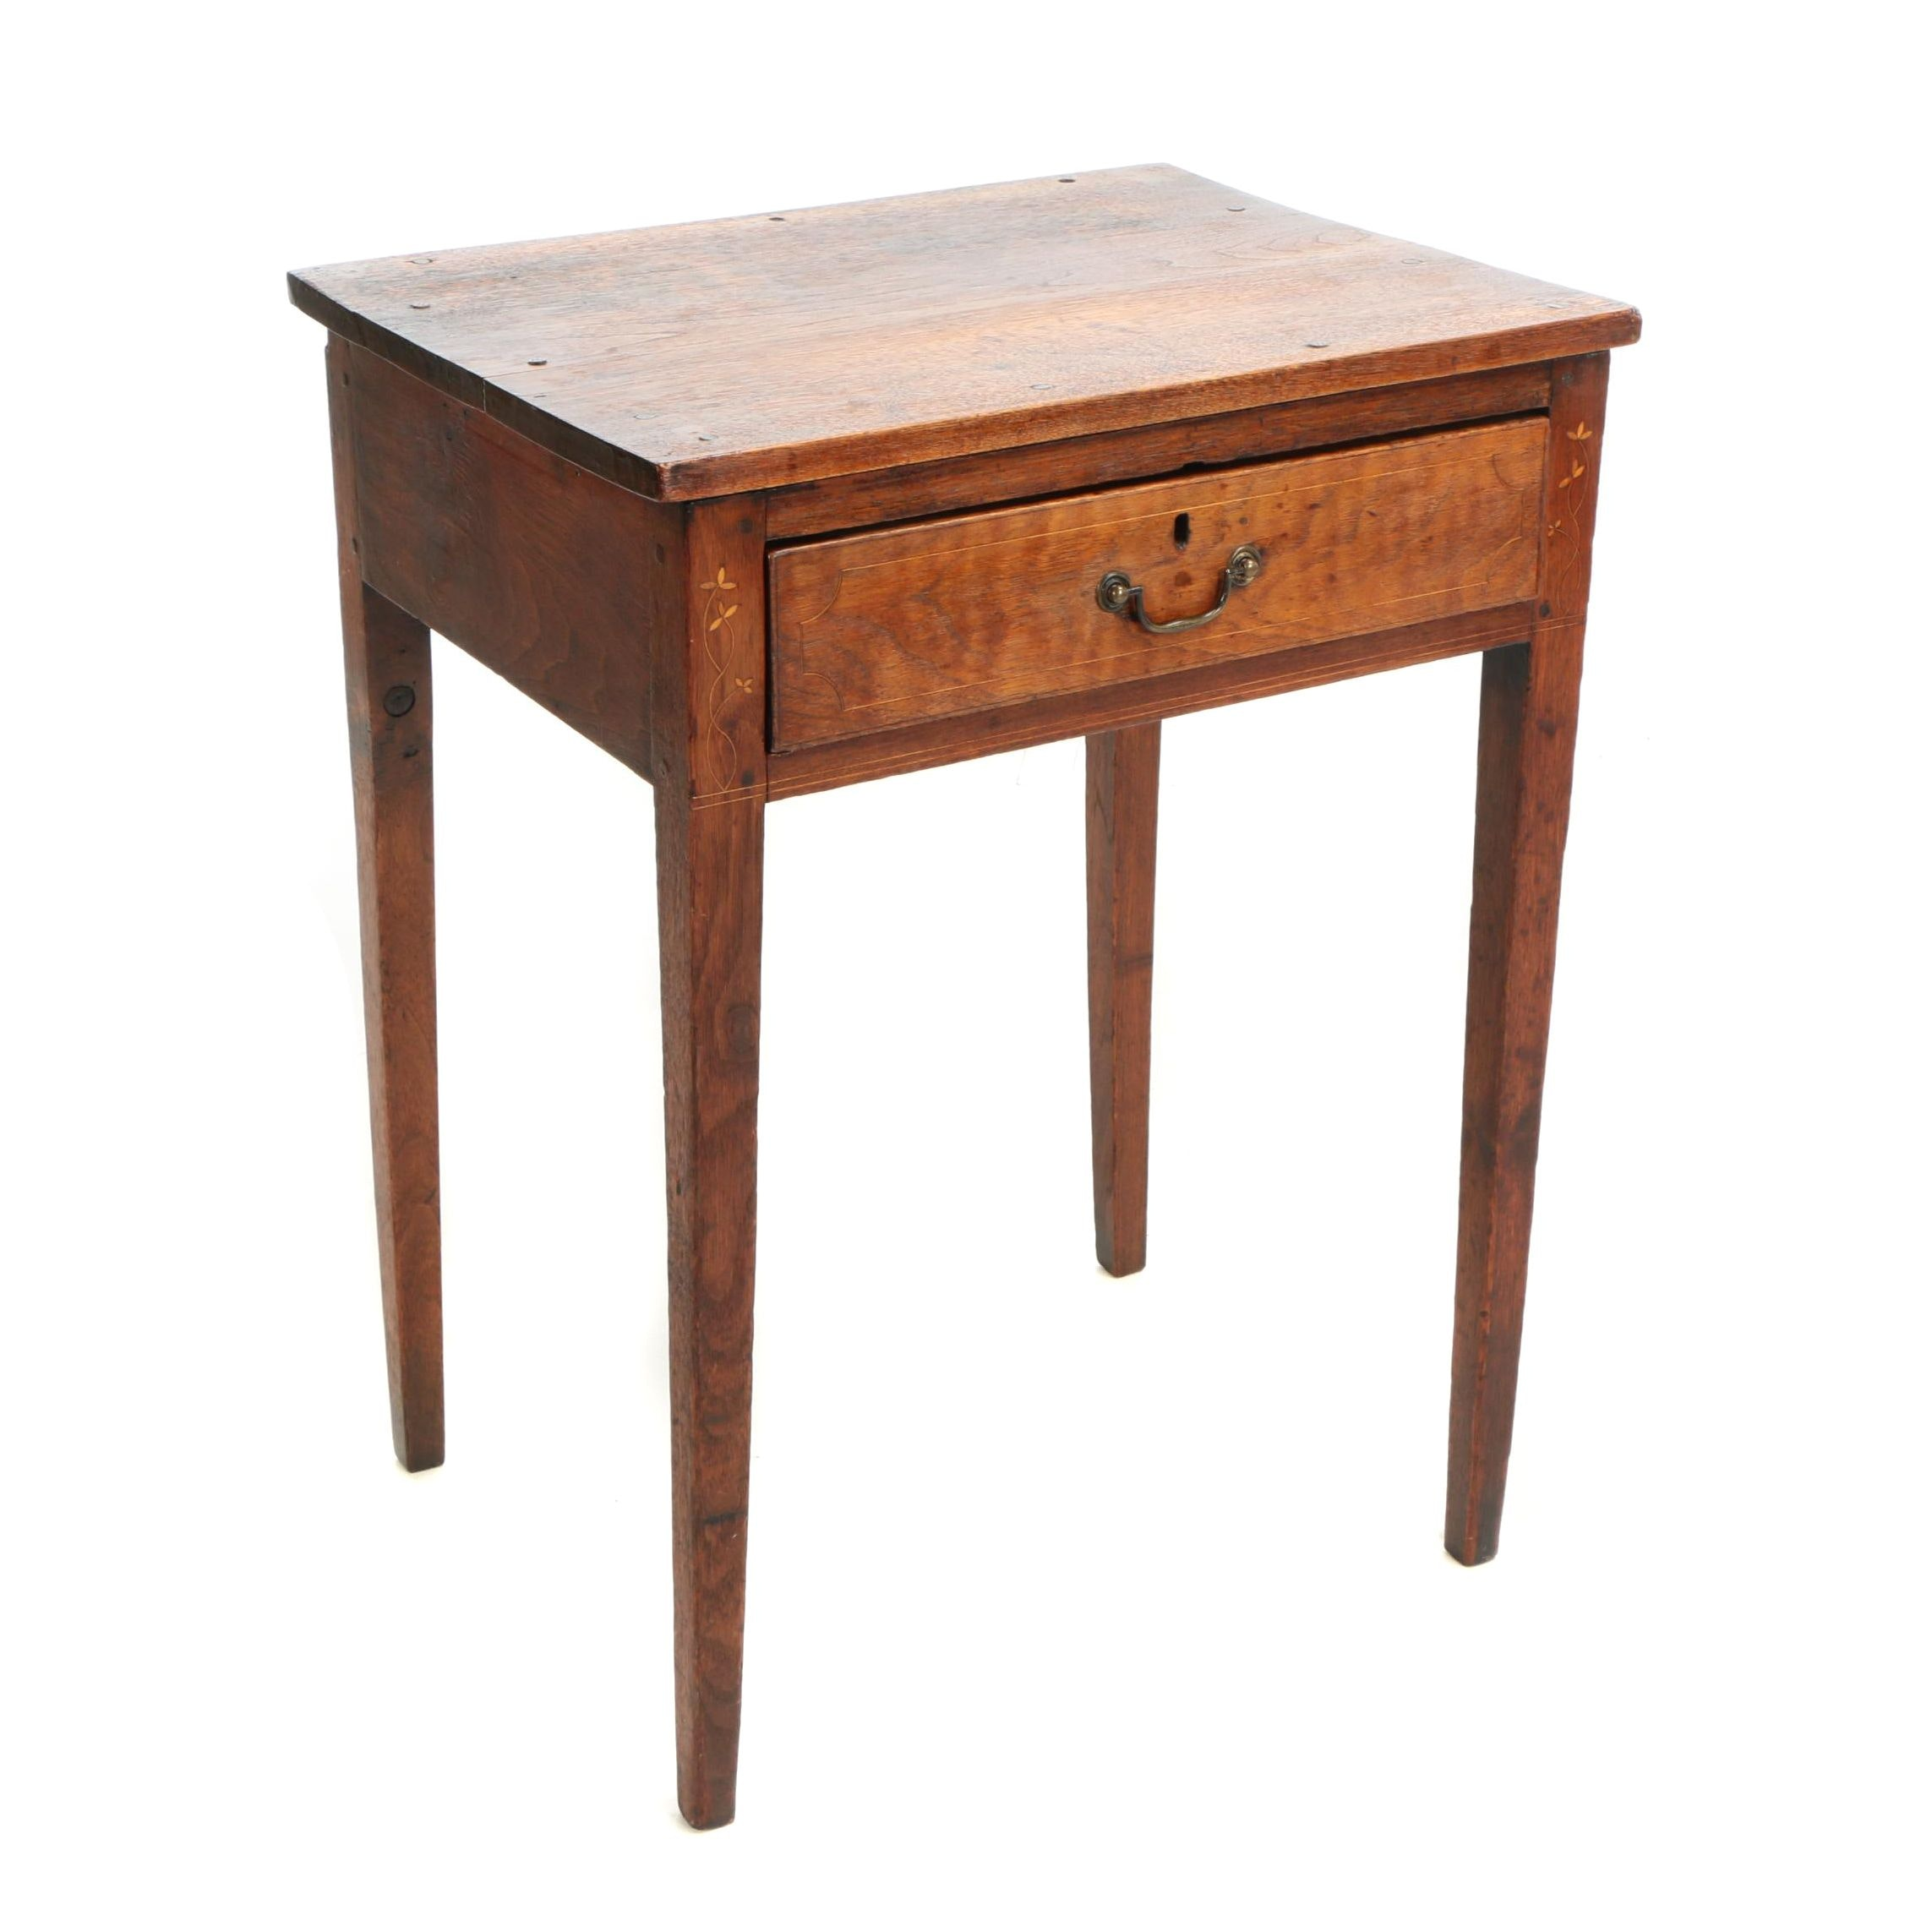 String-Inlaid Walnut and Marquetry One-Drawer Side Table, 19th Century